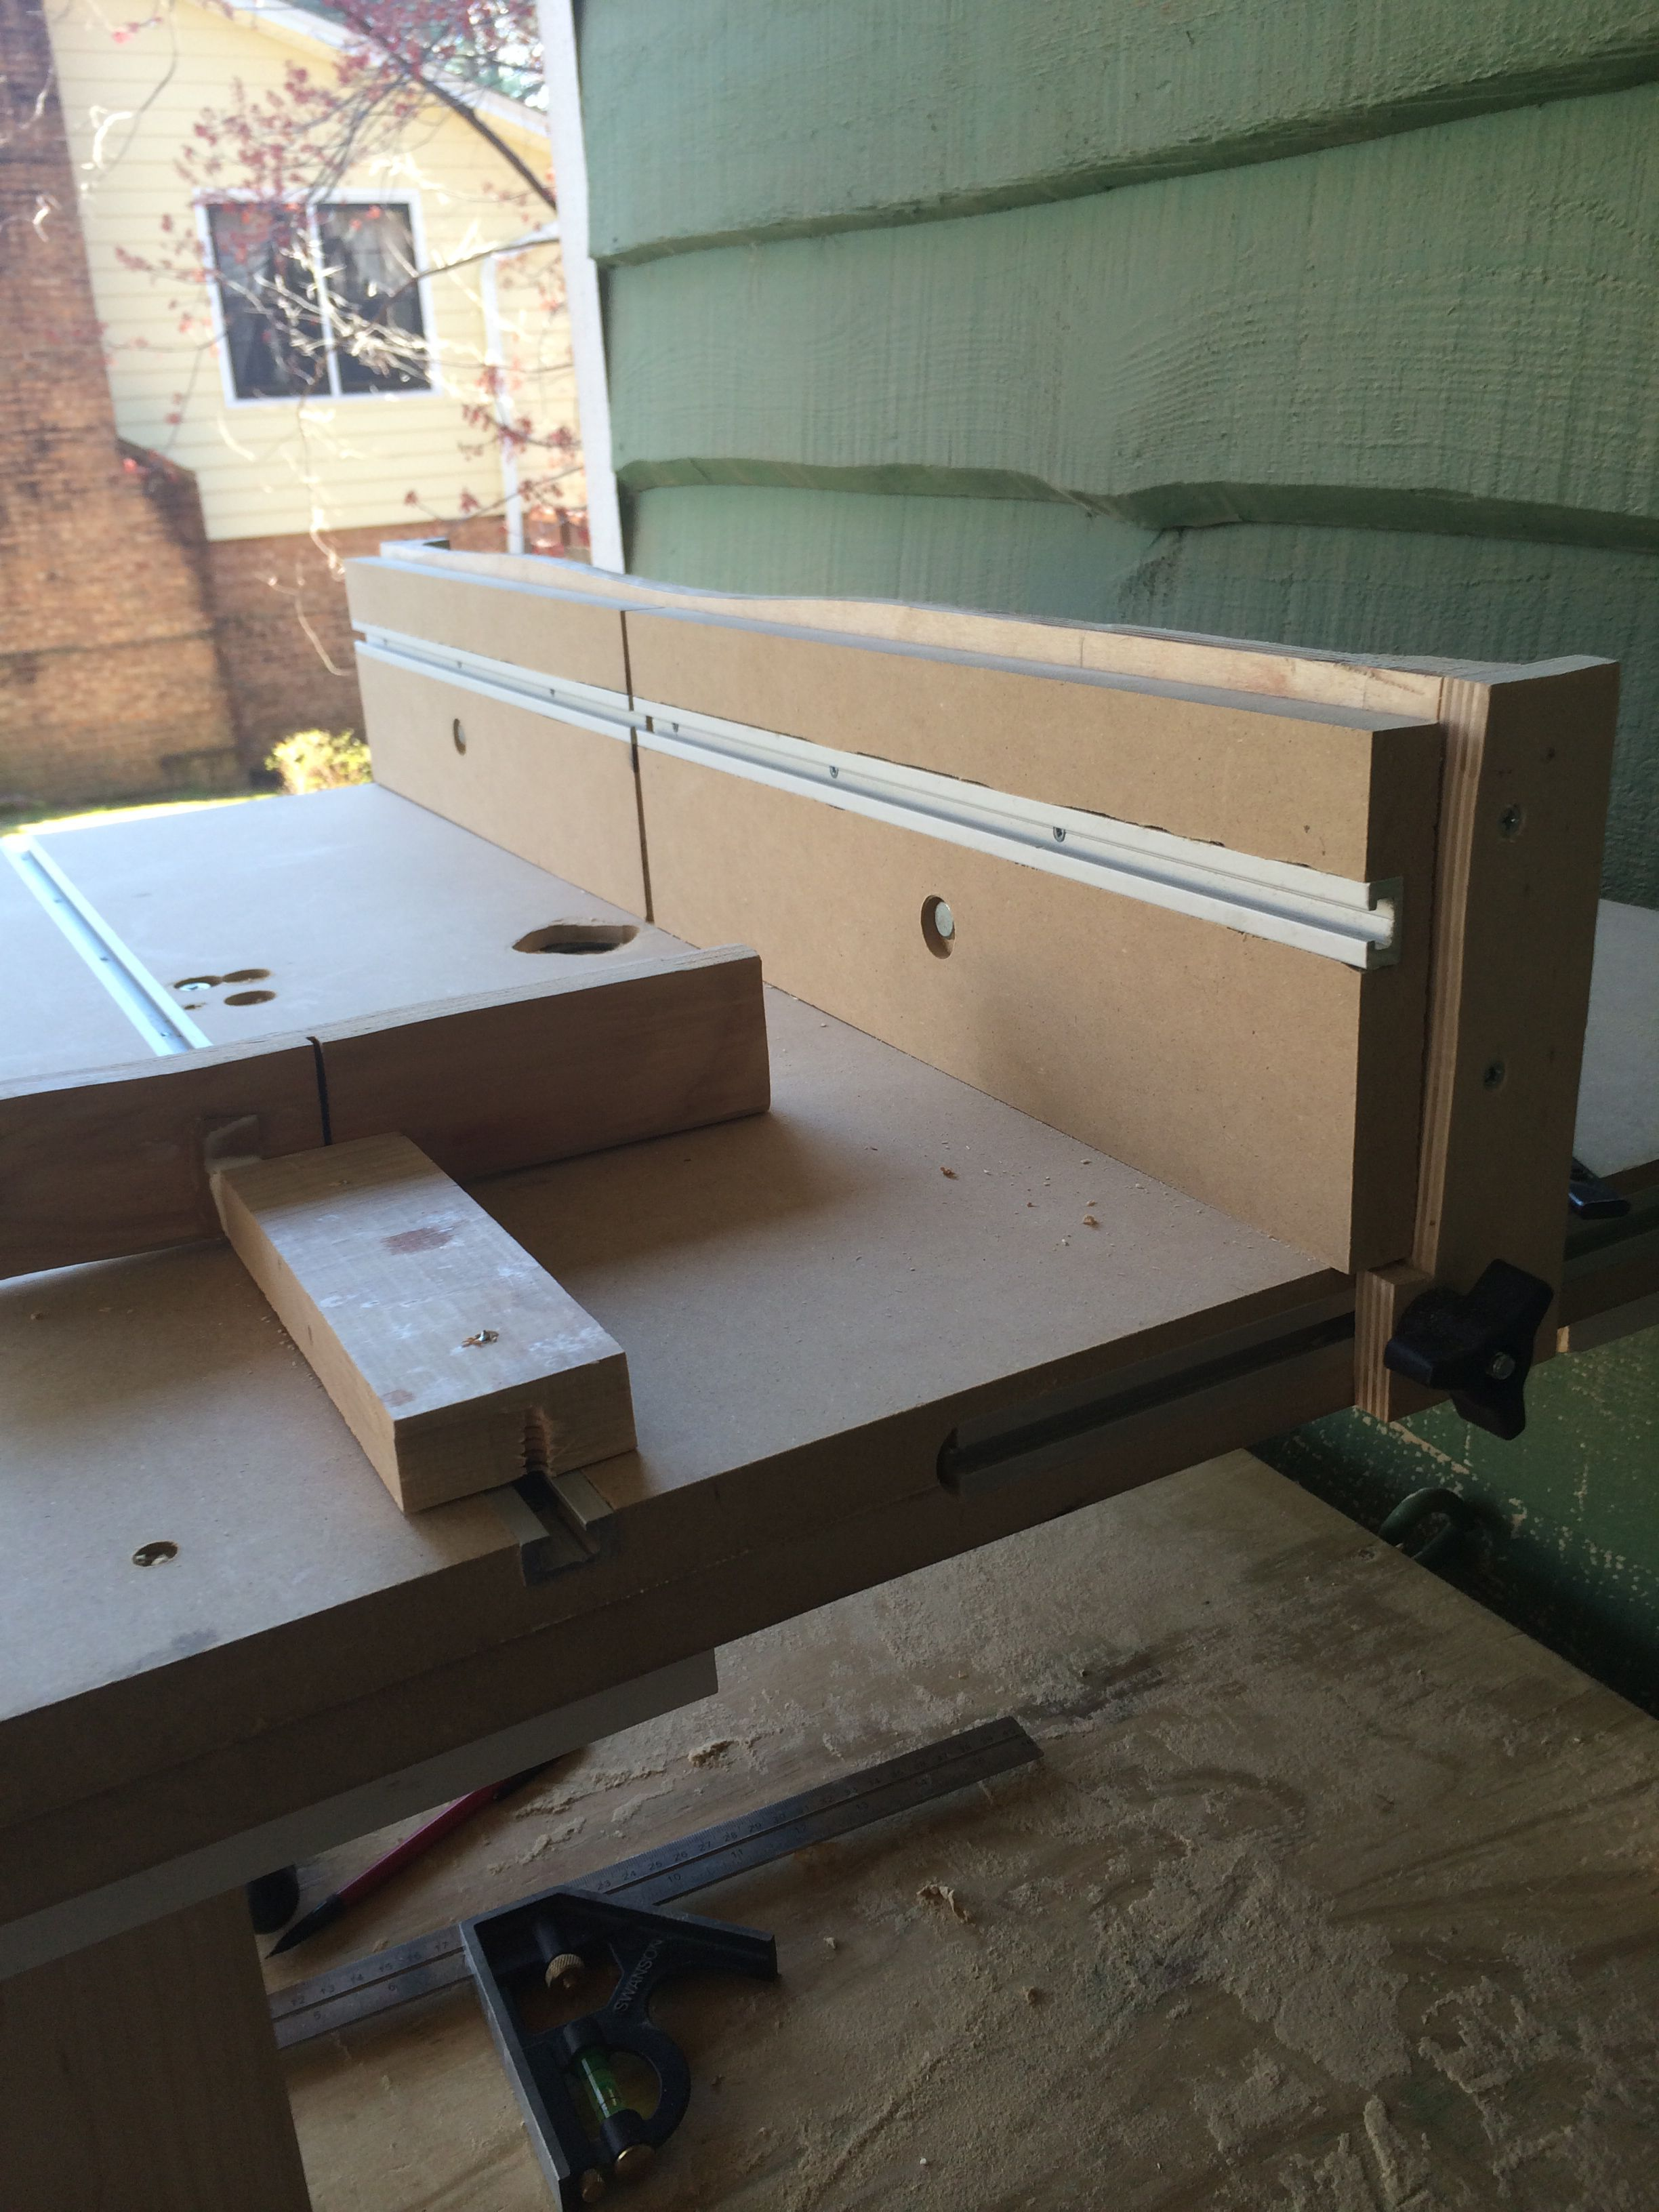 Homemade router table t track to move fence forward and back t homemade router table t track to move fence forward and back t track on fence to put featherboards miter gauge track also added greentooth Image collections